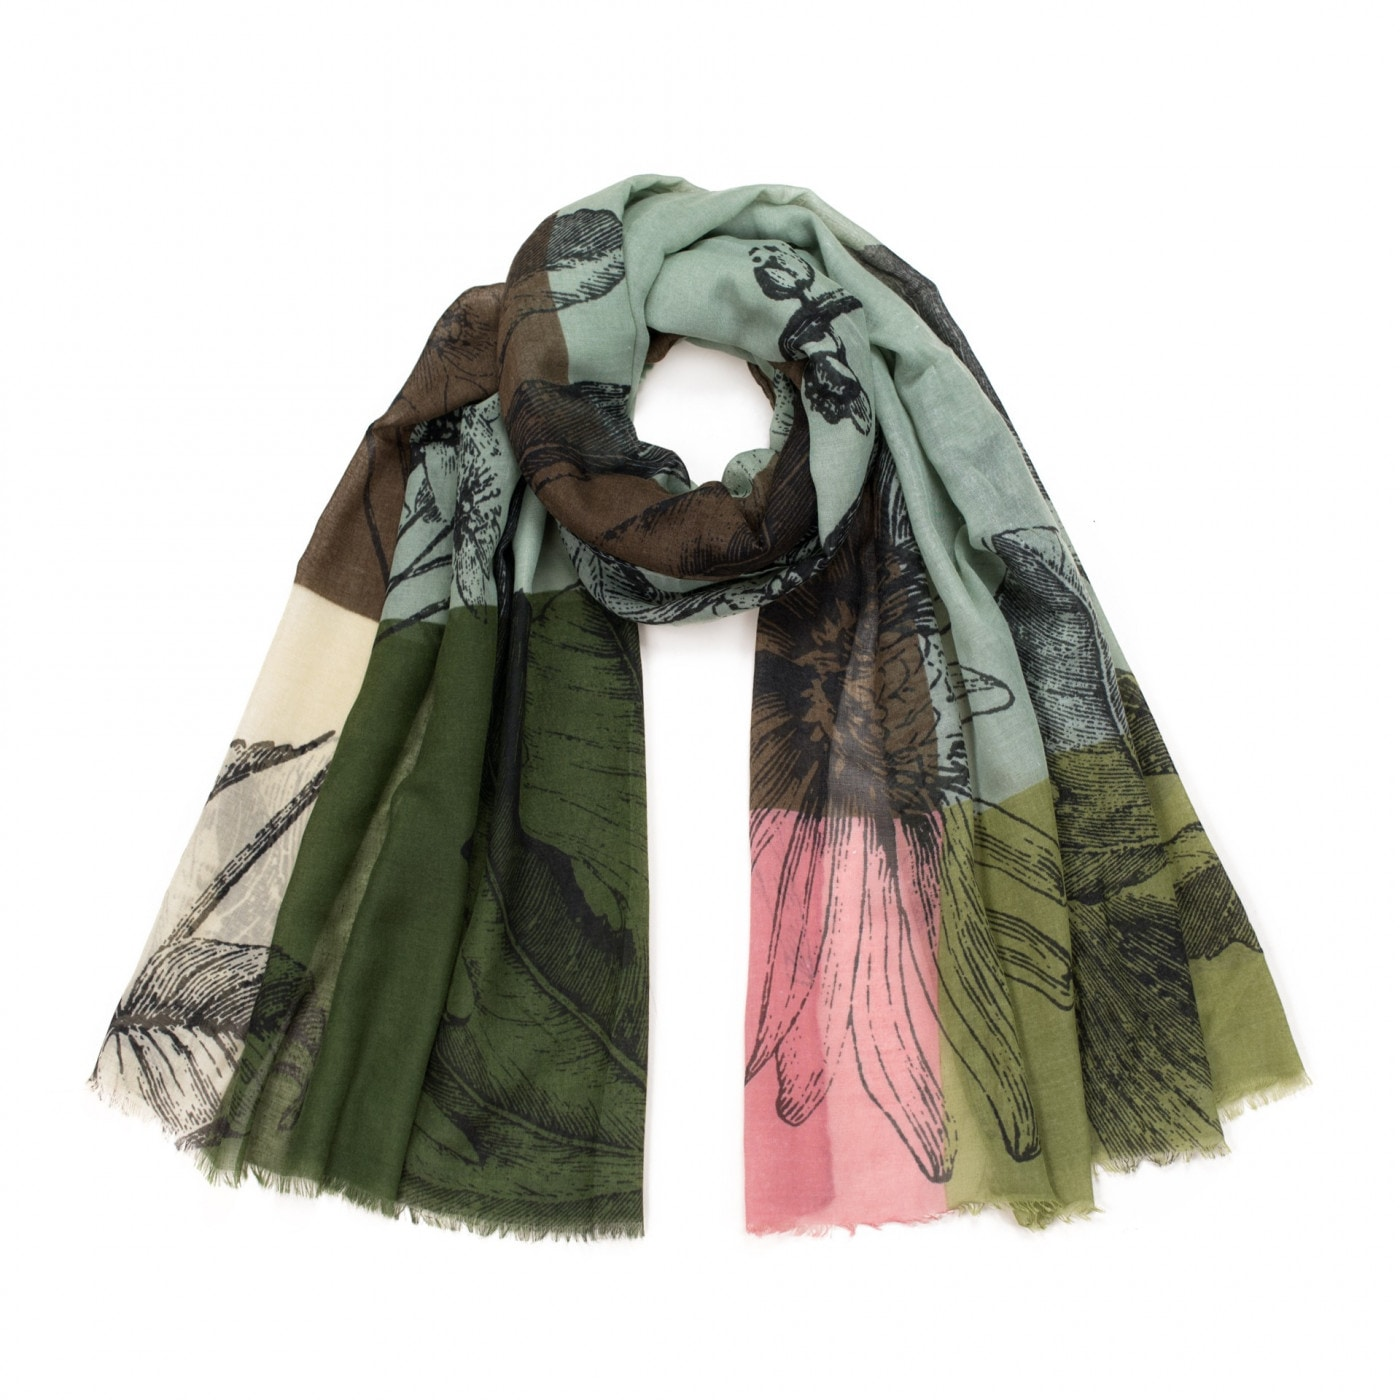 Art Of Polo Woman's Scarf sz18593 Olive